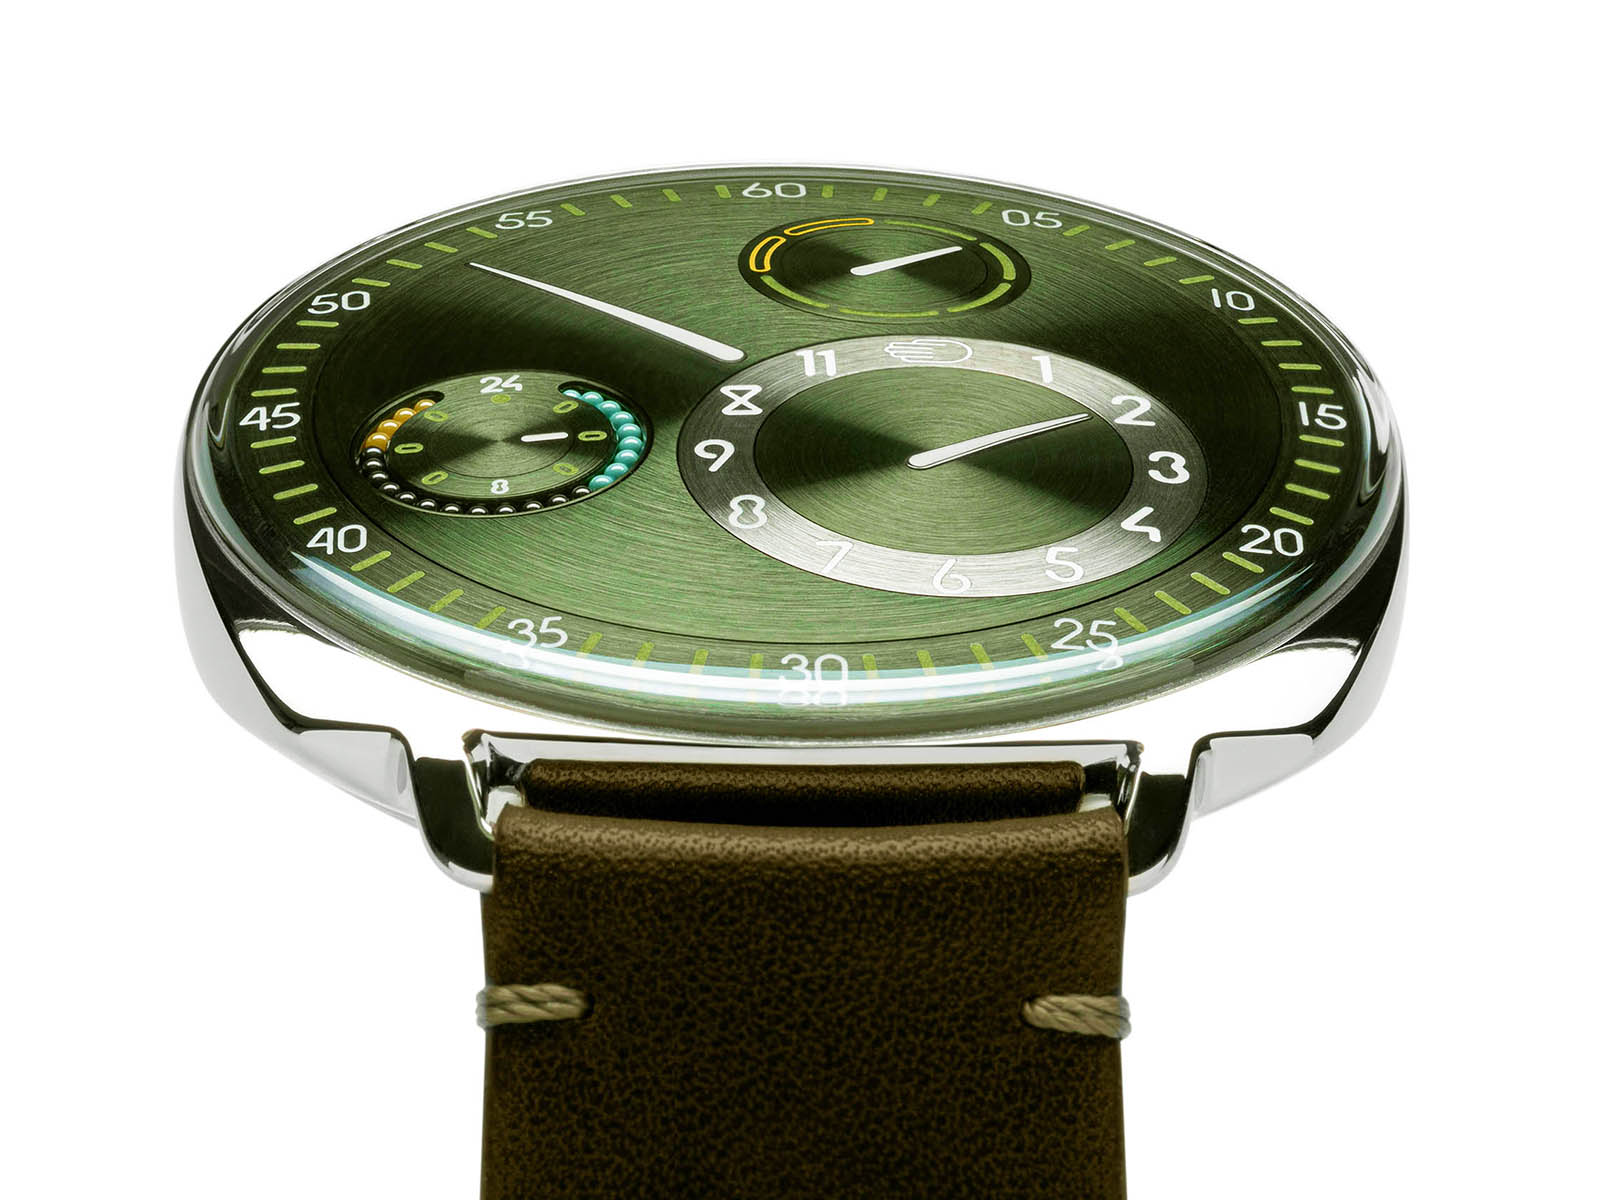 ressence-type-1-squared-x-time-by-colour-6.jpg